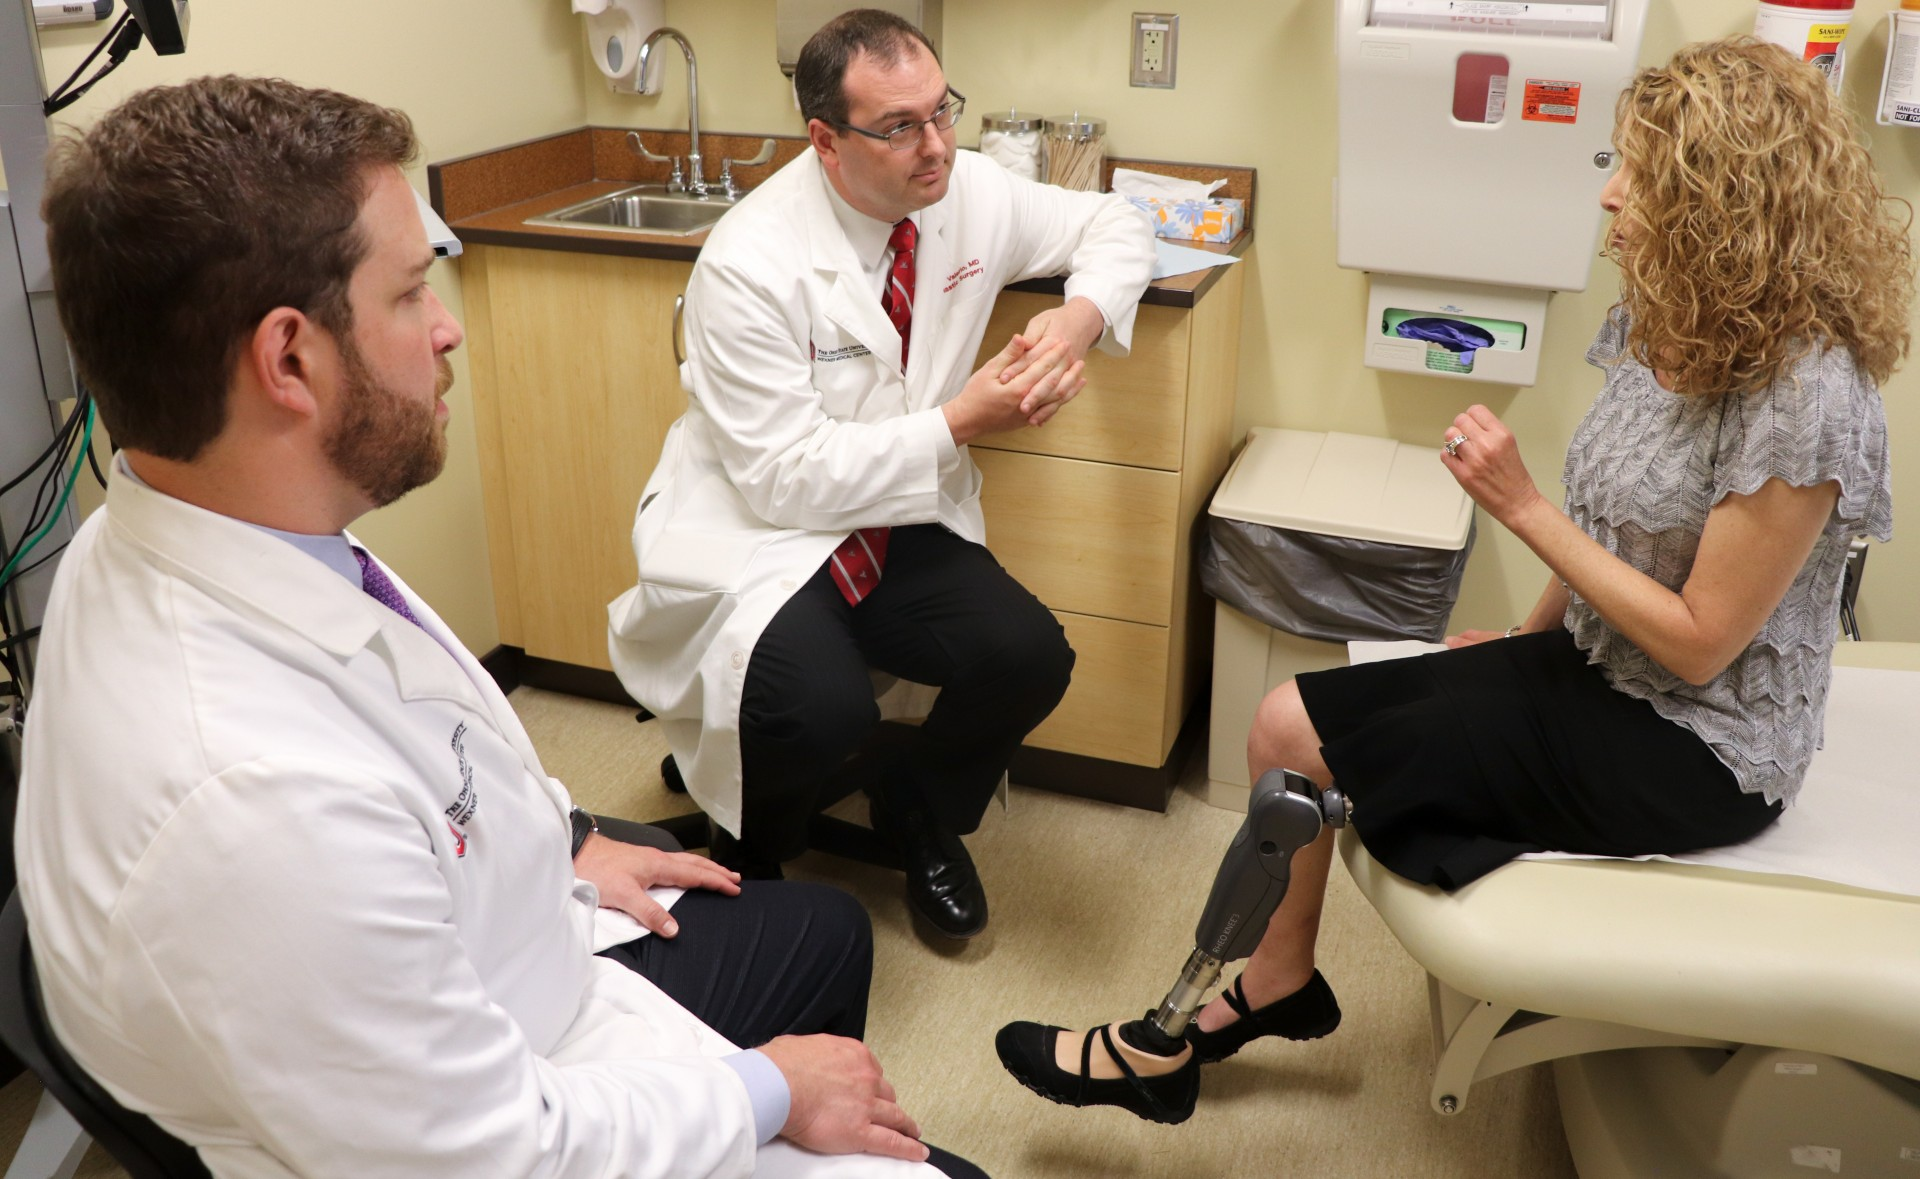 Dr. J. Byers Bowen (left) and Dr. Ian Valerio follow up with a leg amputee who had targeted muscle reinnervation surgery at Wexner Medical Center.